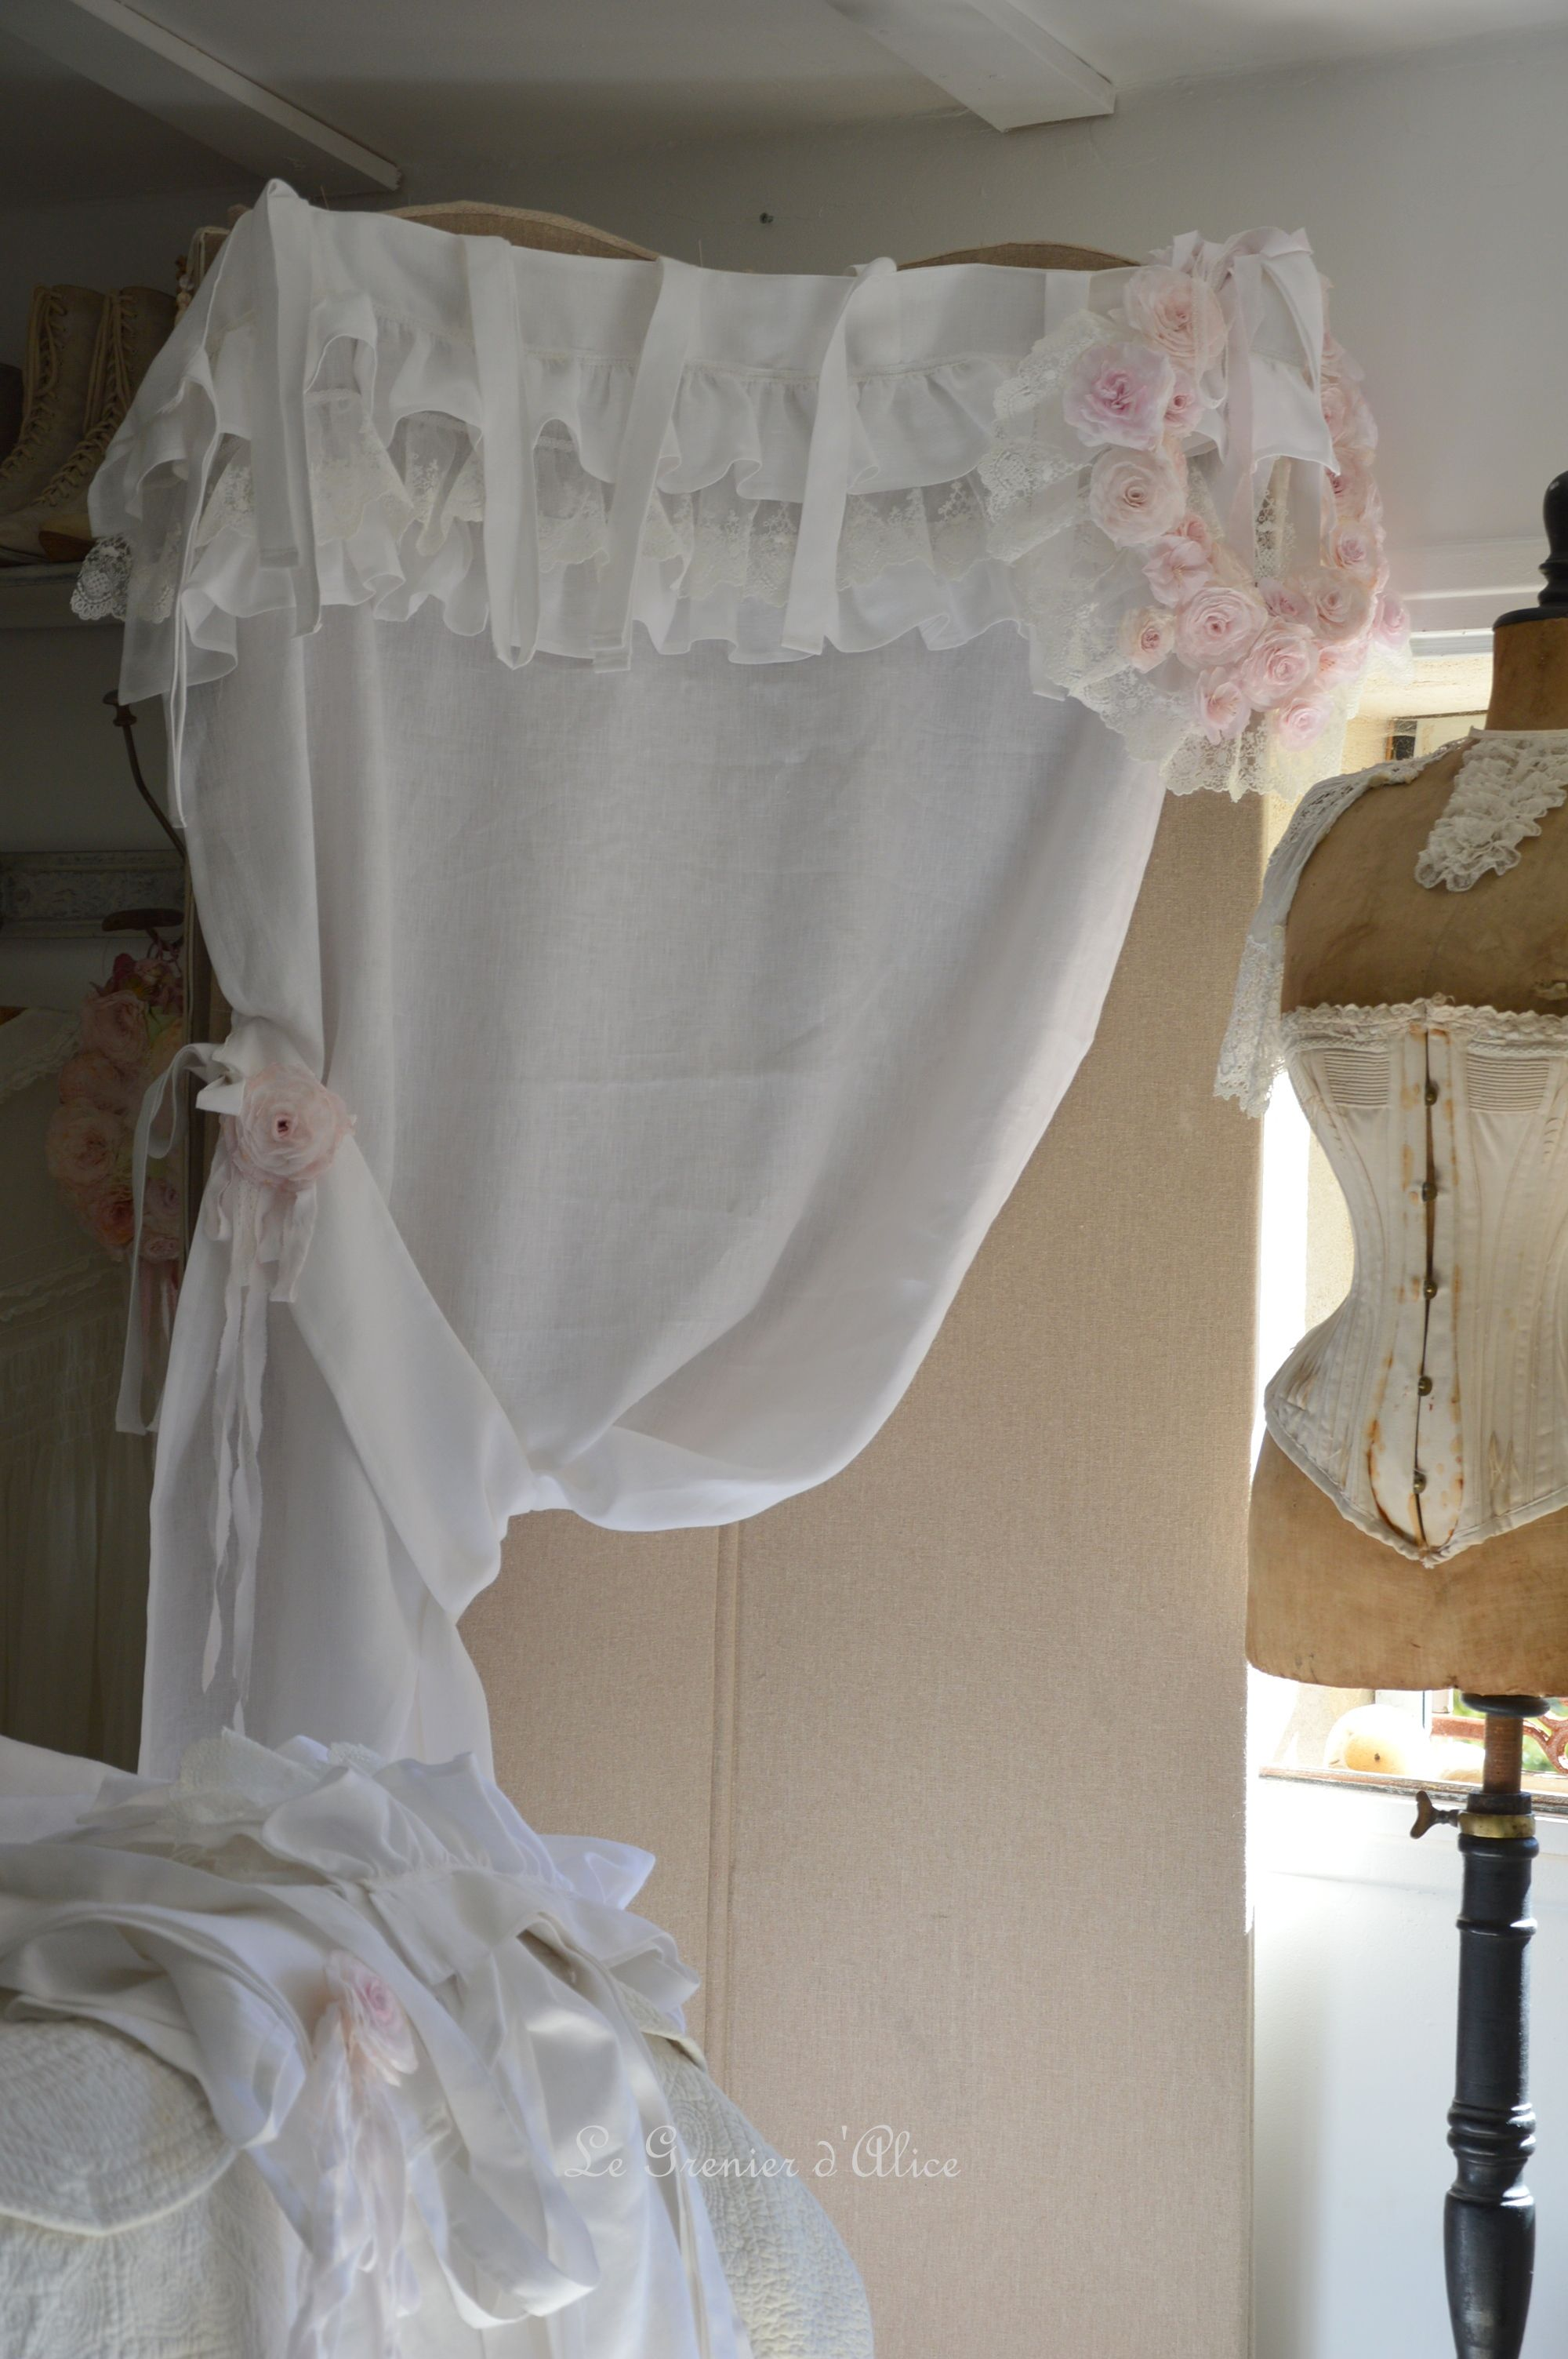 rideau lin blanc shabby chic volant froufrou dentelle blanche romantique embrasse embrase. Black Bedroom Furniture Sets. Home Design Ideas